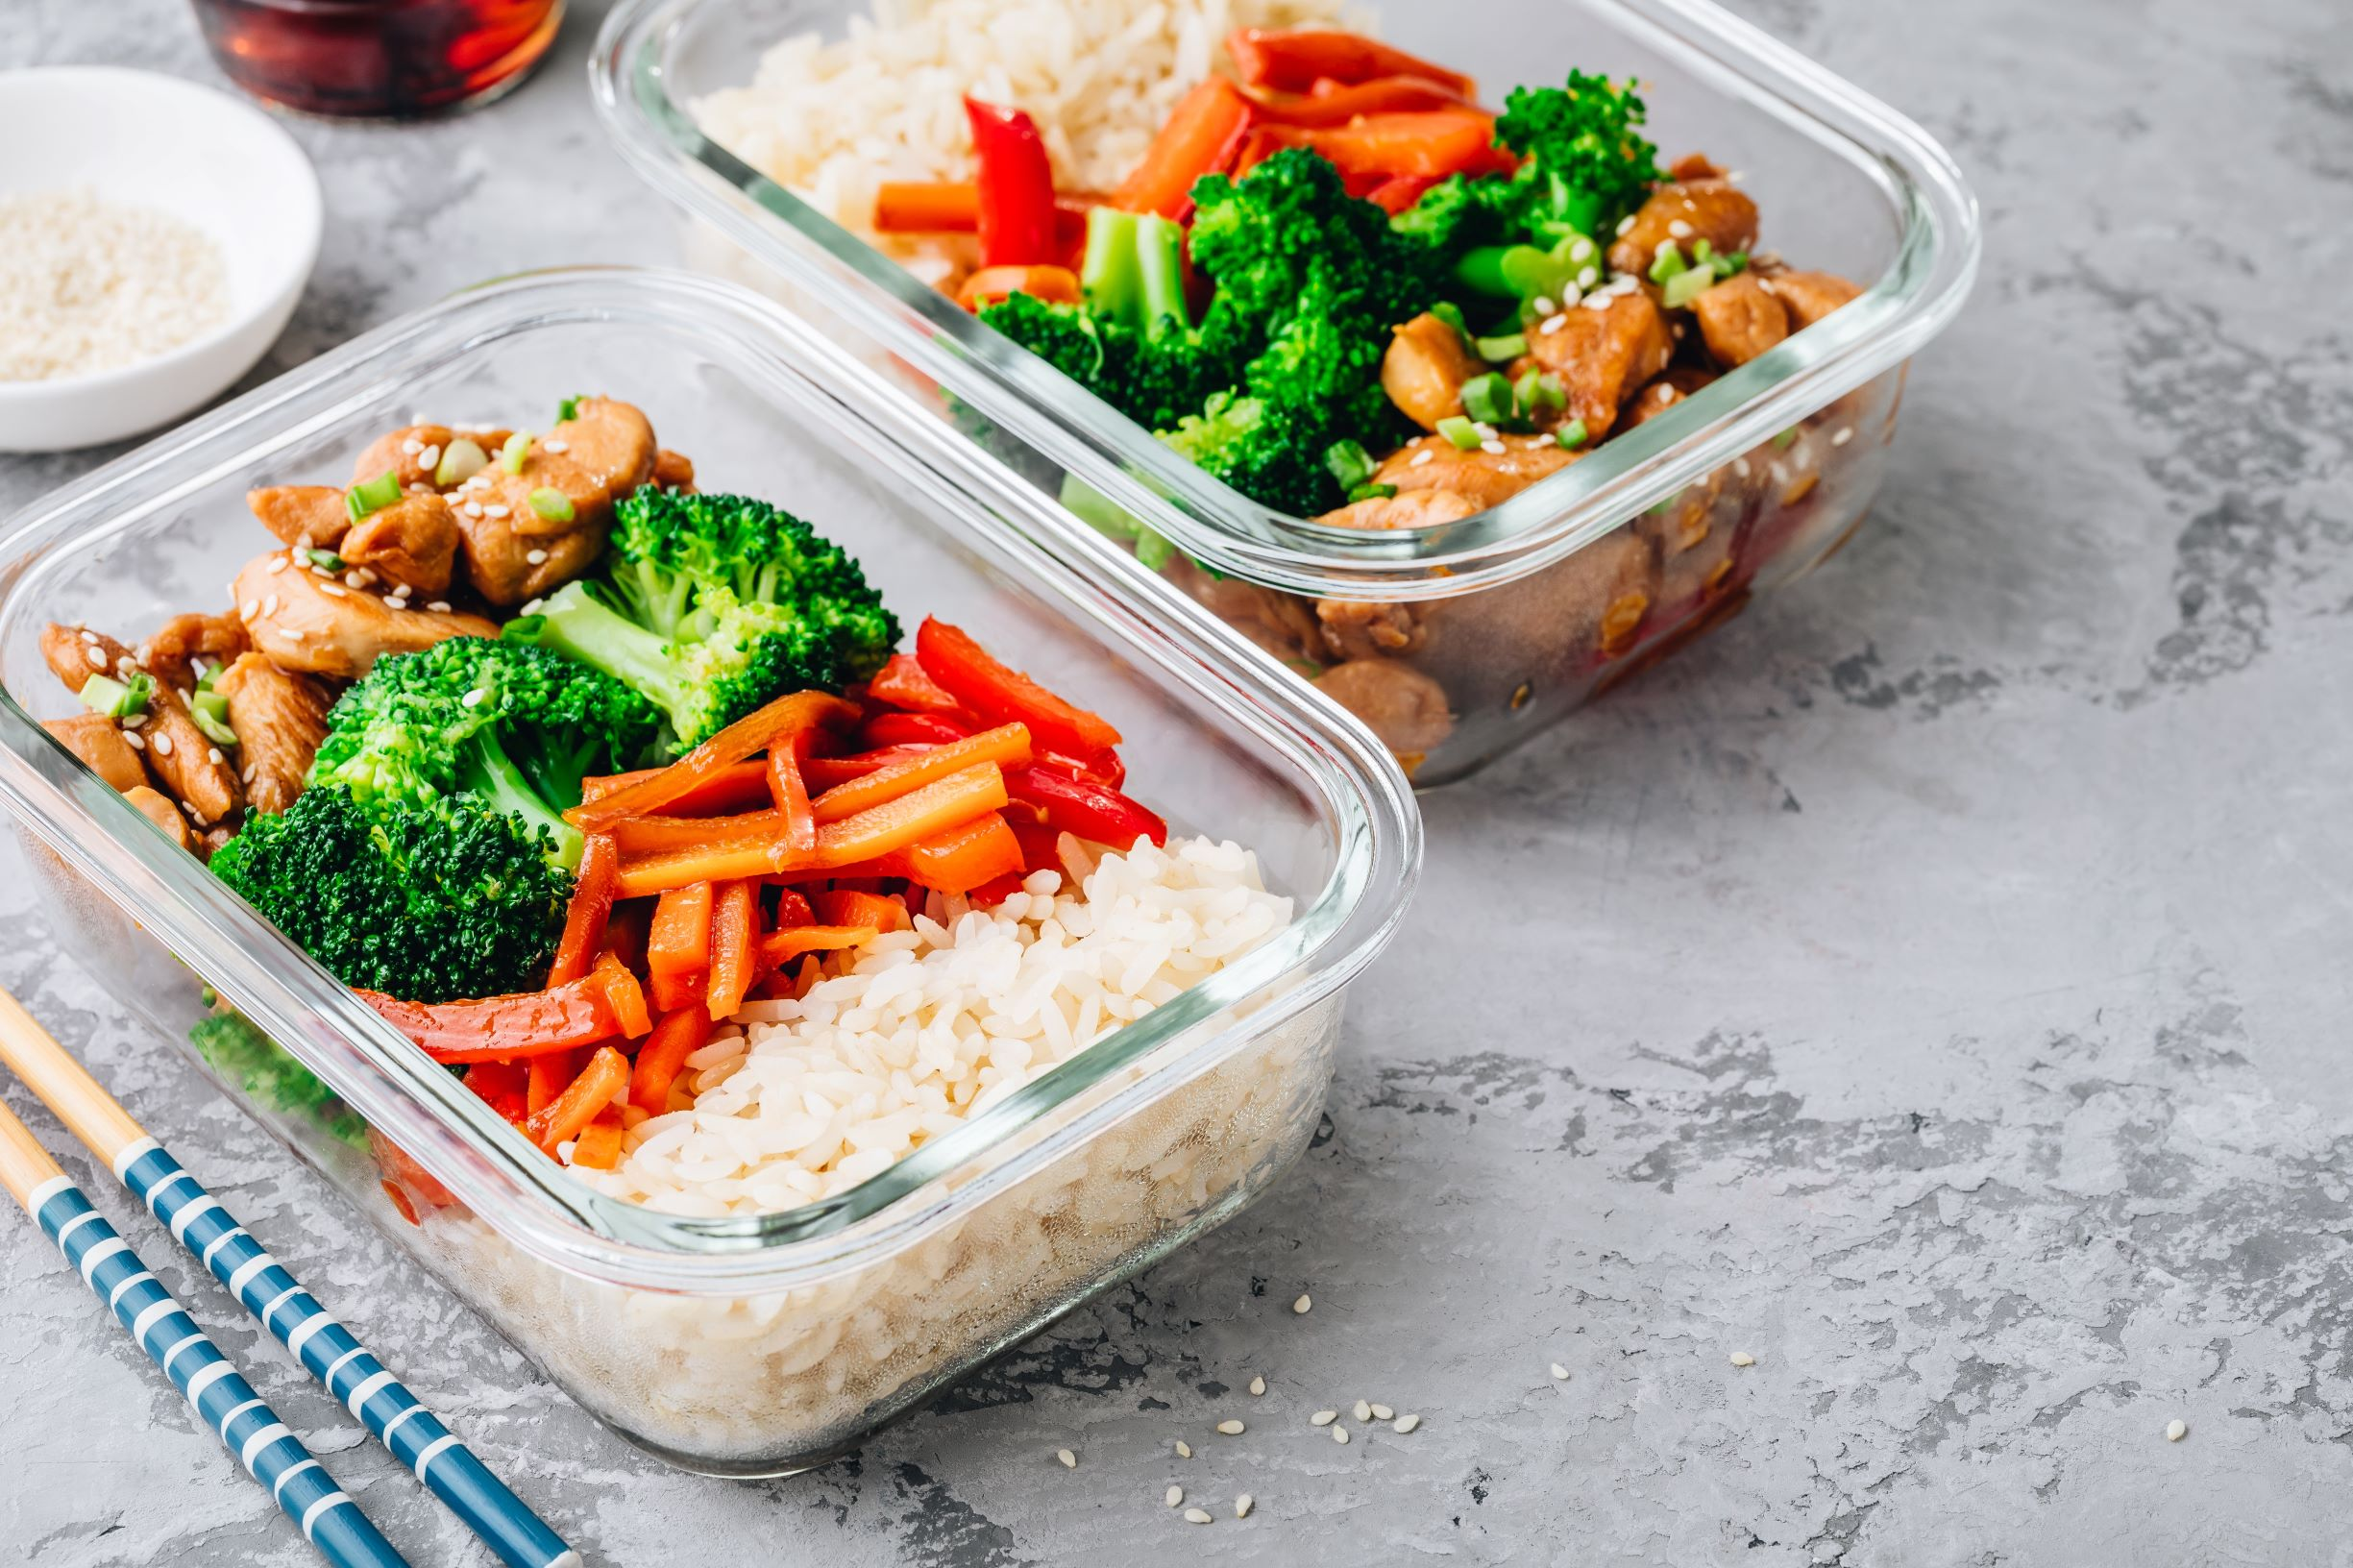 Healthy food in container boxes